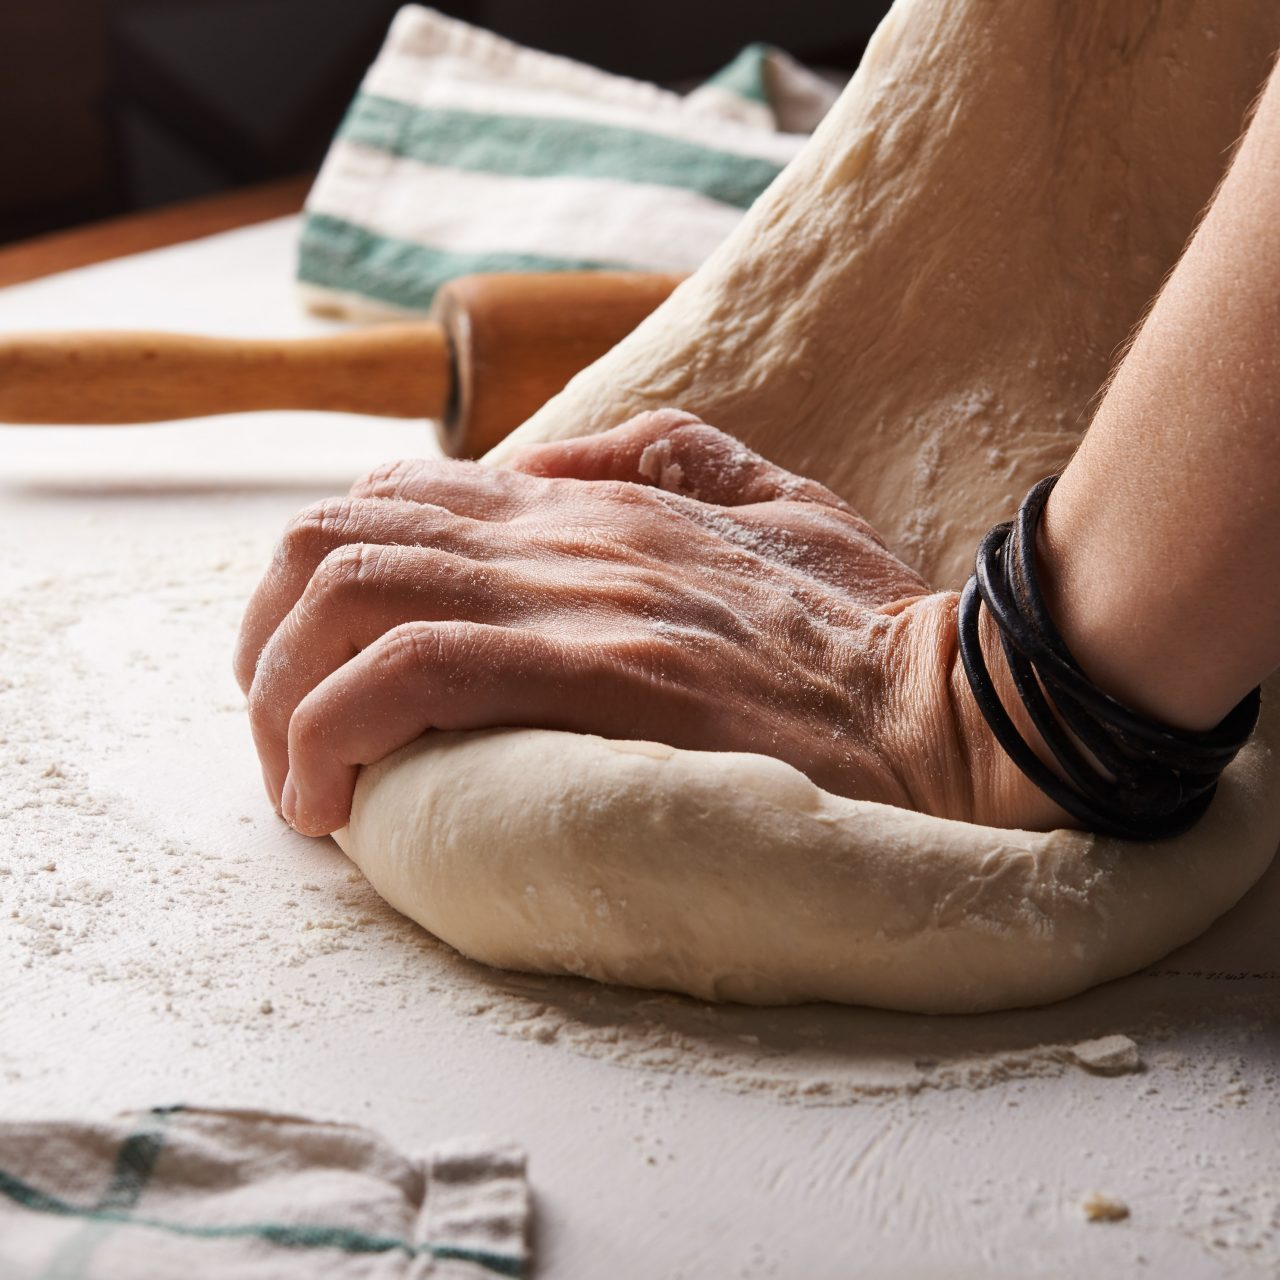 A hand kneading dough on a table